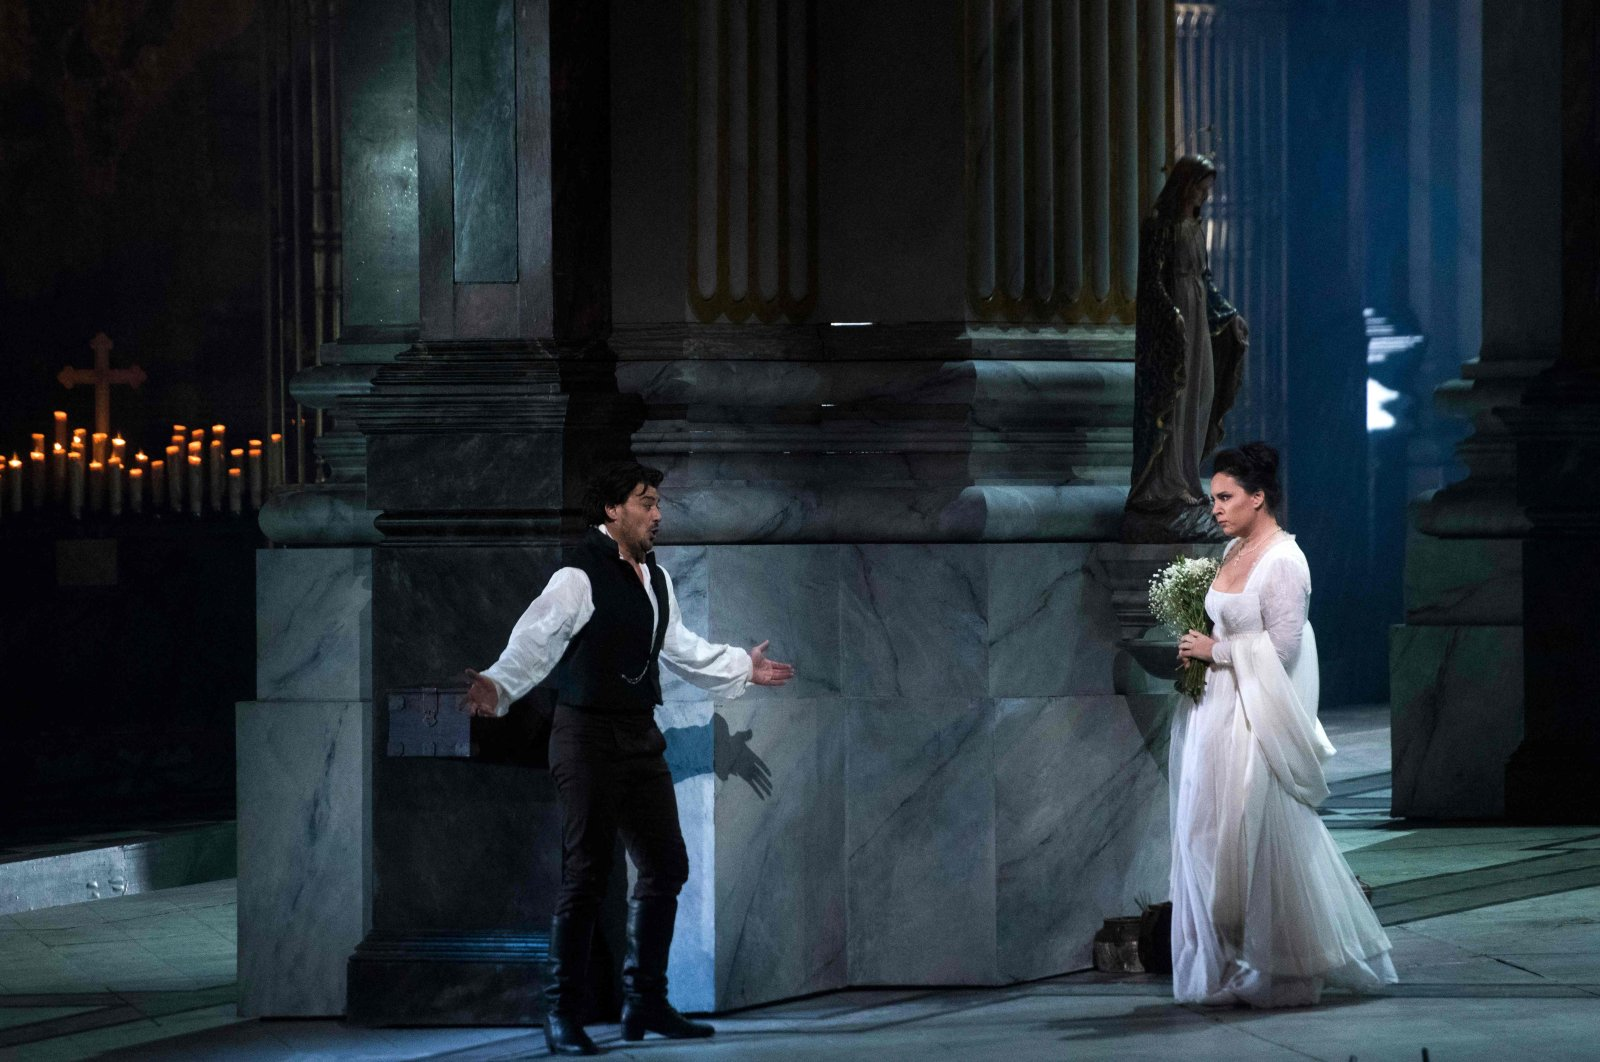 """Sonya Yoncheva, who plays the title role of the fiery diva, and Vittorio Grigolo, who plays her passionate lover, Cavaradossi, perform in """"Tosca"""" at the Metropolitan Opera, New York City, January 23, 2018. (AFP File Photo)"""